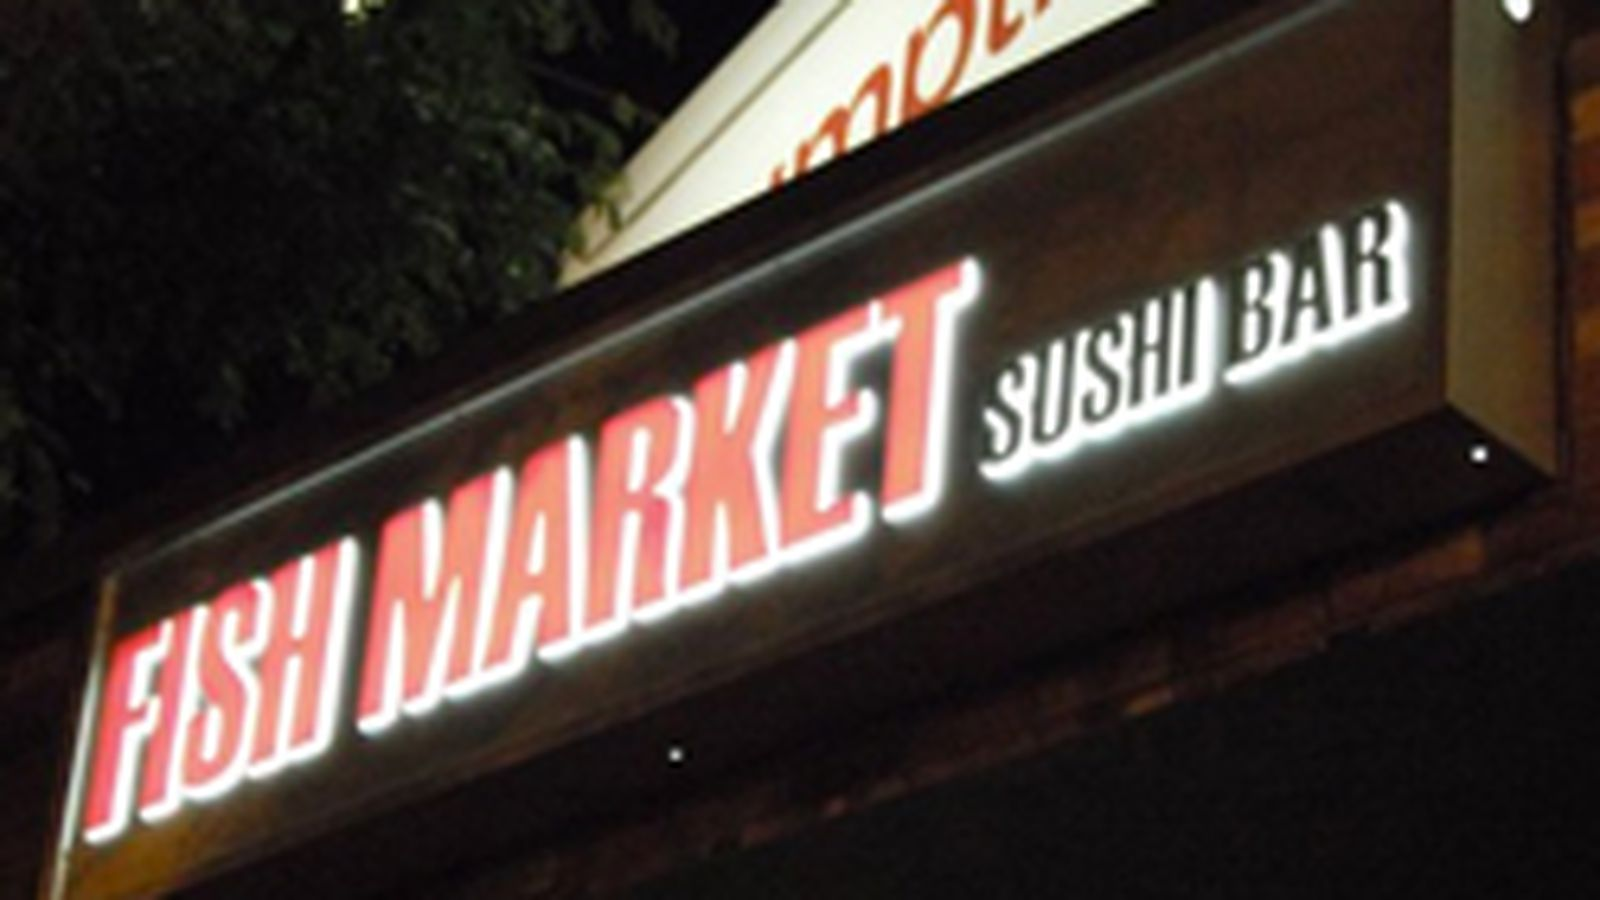 Fish market gets beer wine and late night fun eater boston for Fish market allston